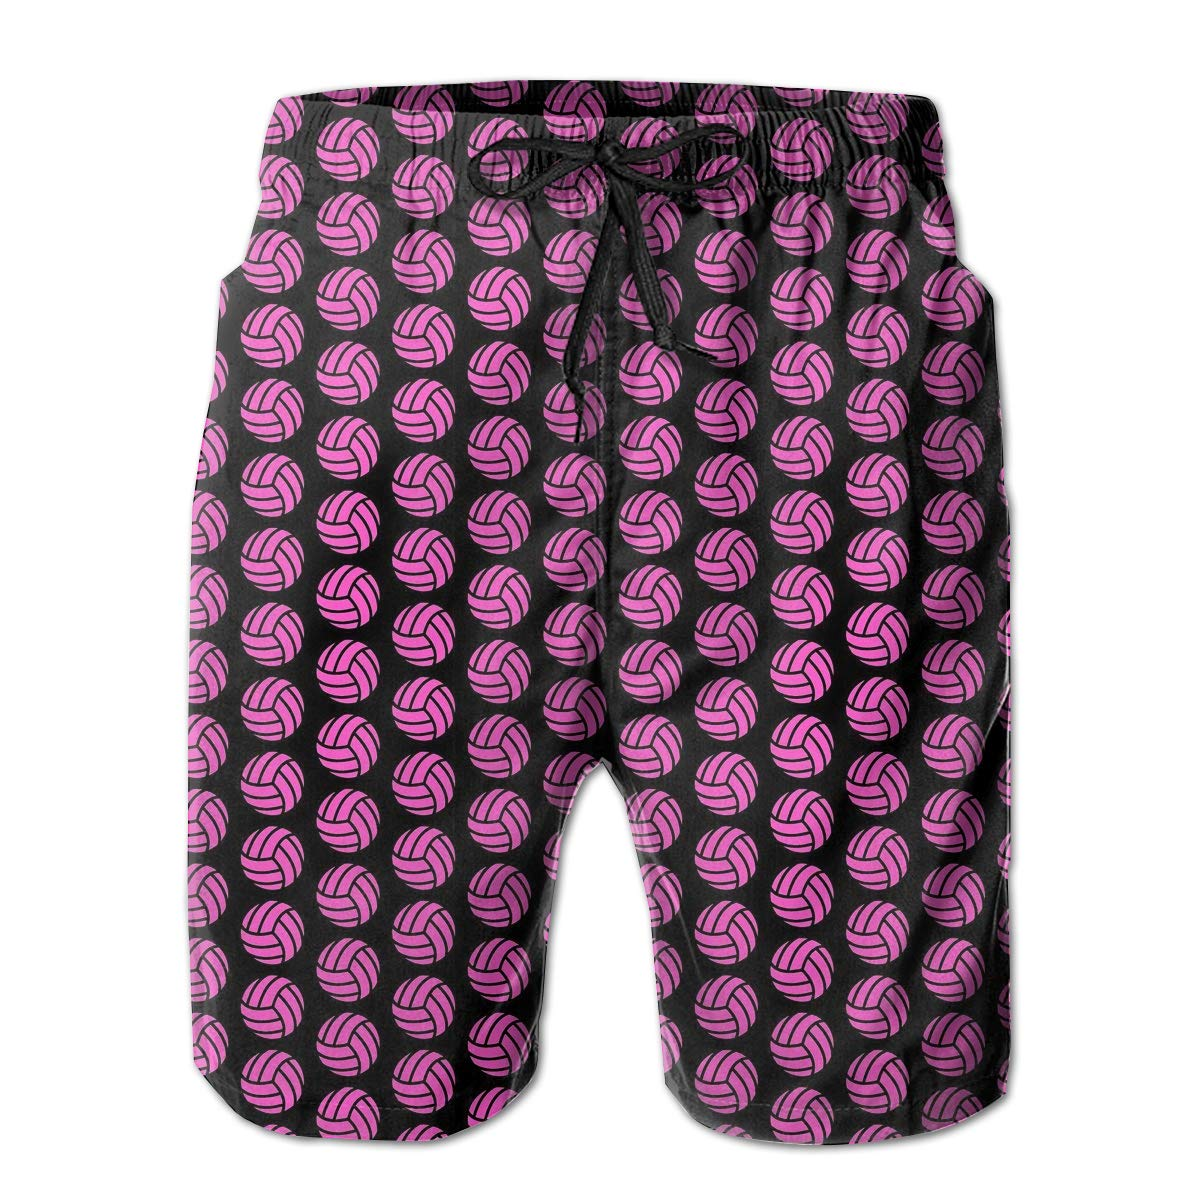 HZamora/_H Mens Pink Volleyball Summer Breathable Quick-Drying Swim Trunks Beach Shorts Board Shorts